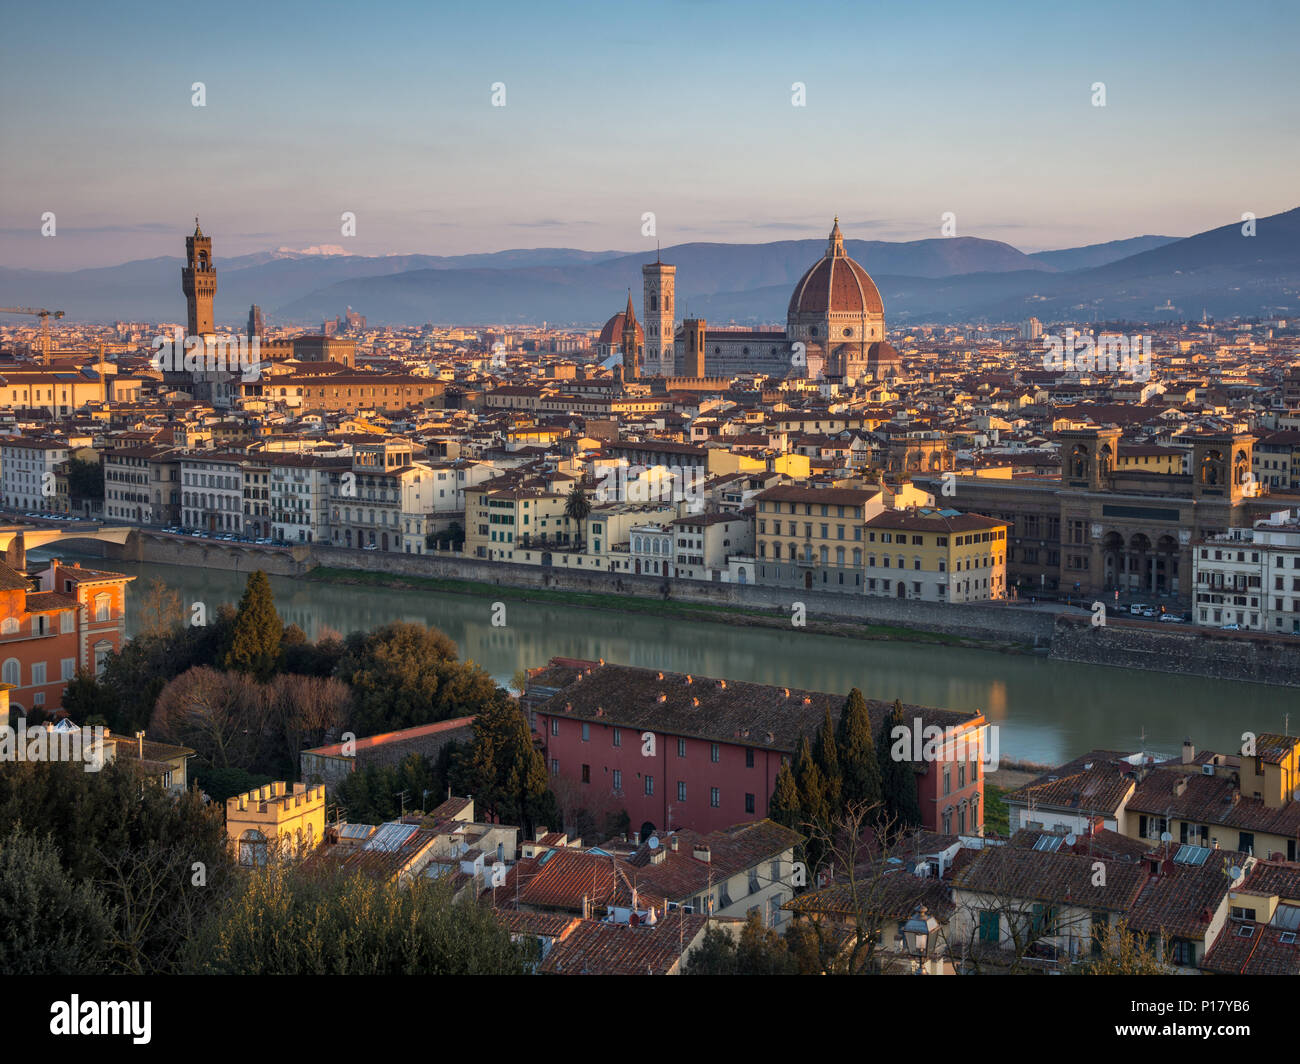 Florence, Italy - March 24, 2018: Morning light illuminates the cityscape of Florence, including the historic landmarks of Palazzo Vecchio and the Duo - Stock Image